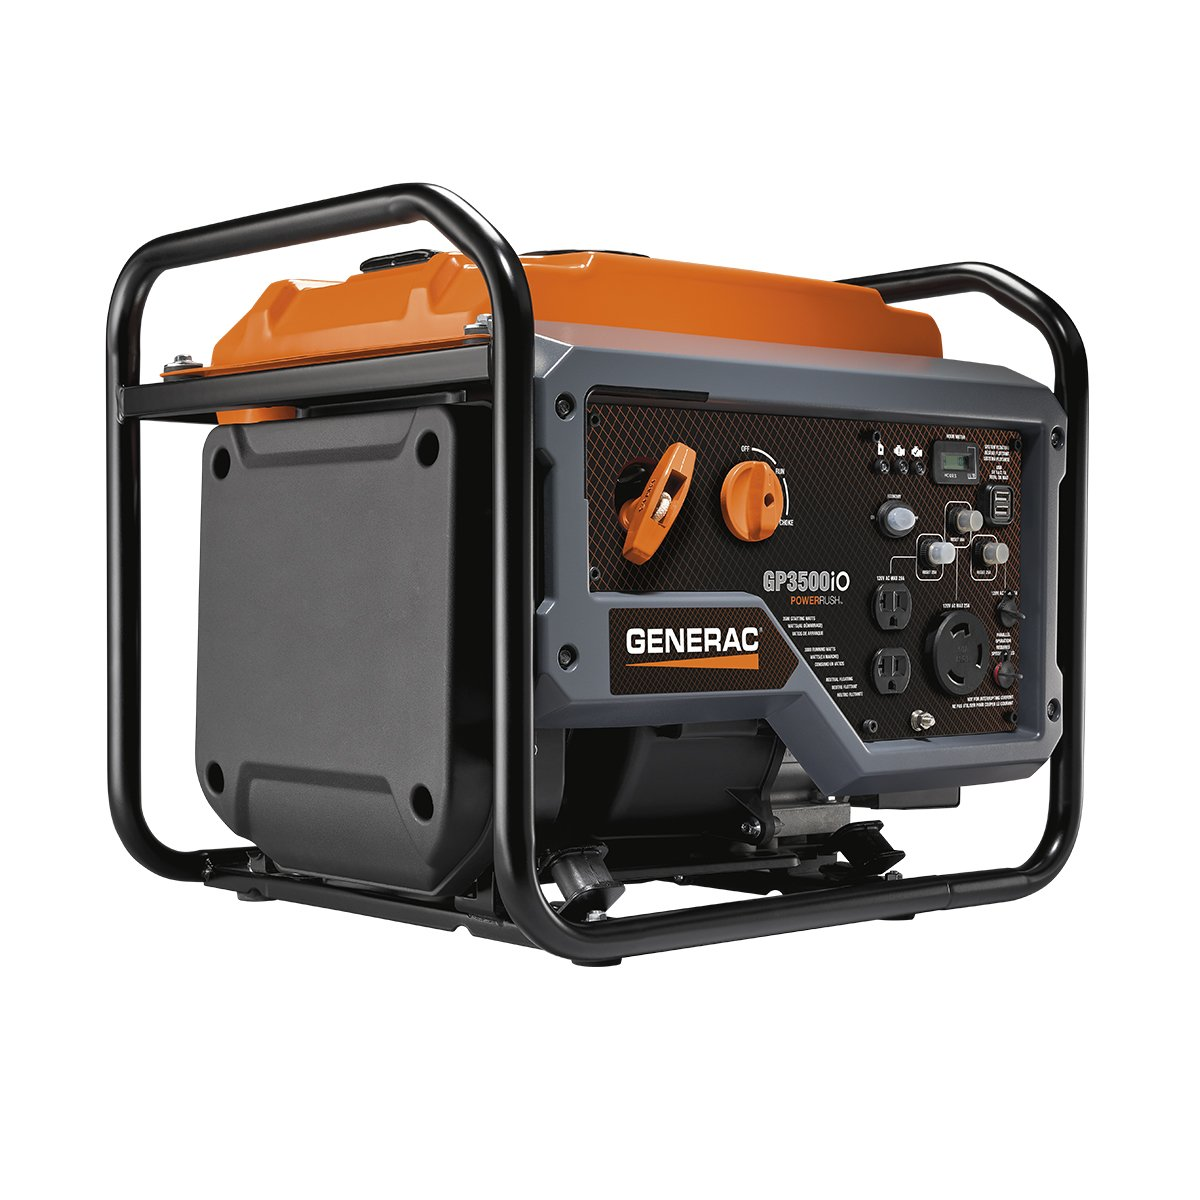 Generac GP3500iO Open Frame RV Ready Inverter Generator – 3500 Starting Watts with PowerRush Technology